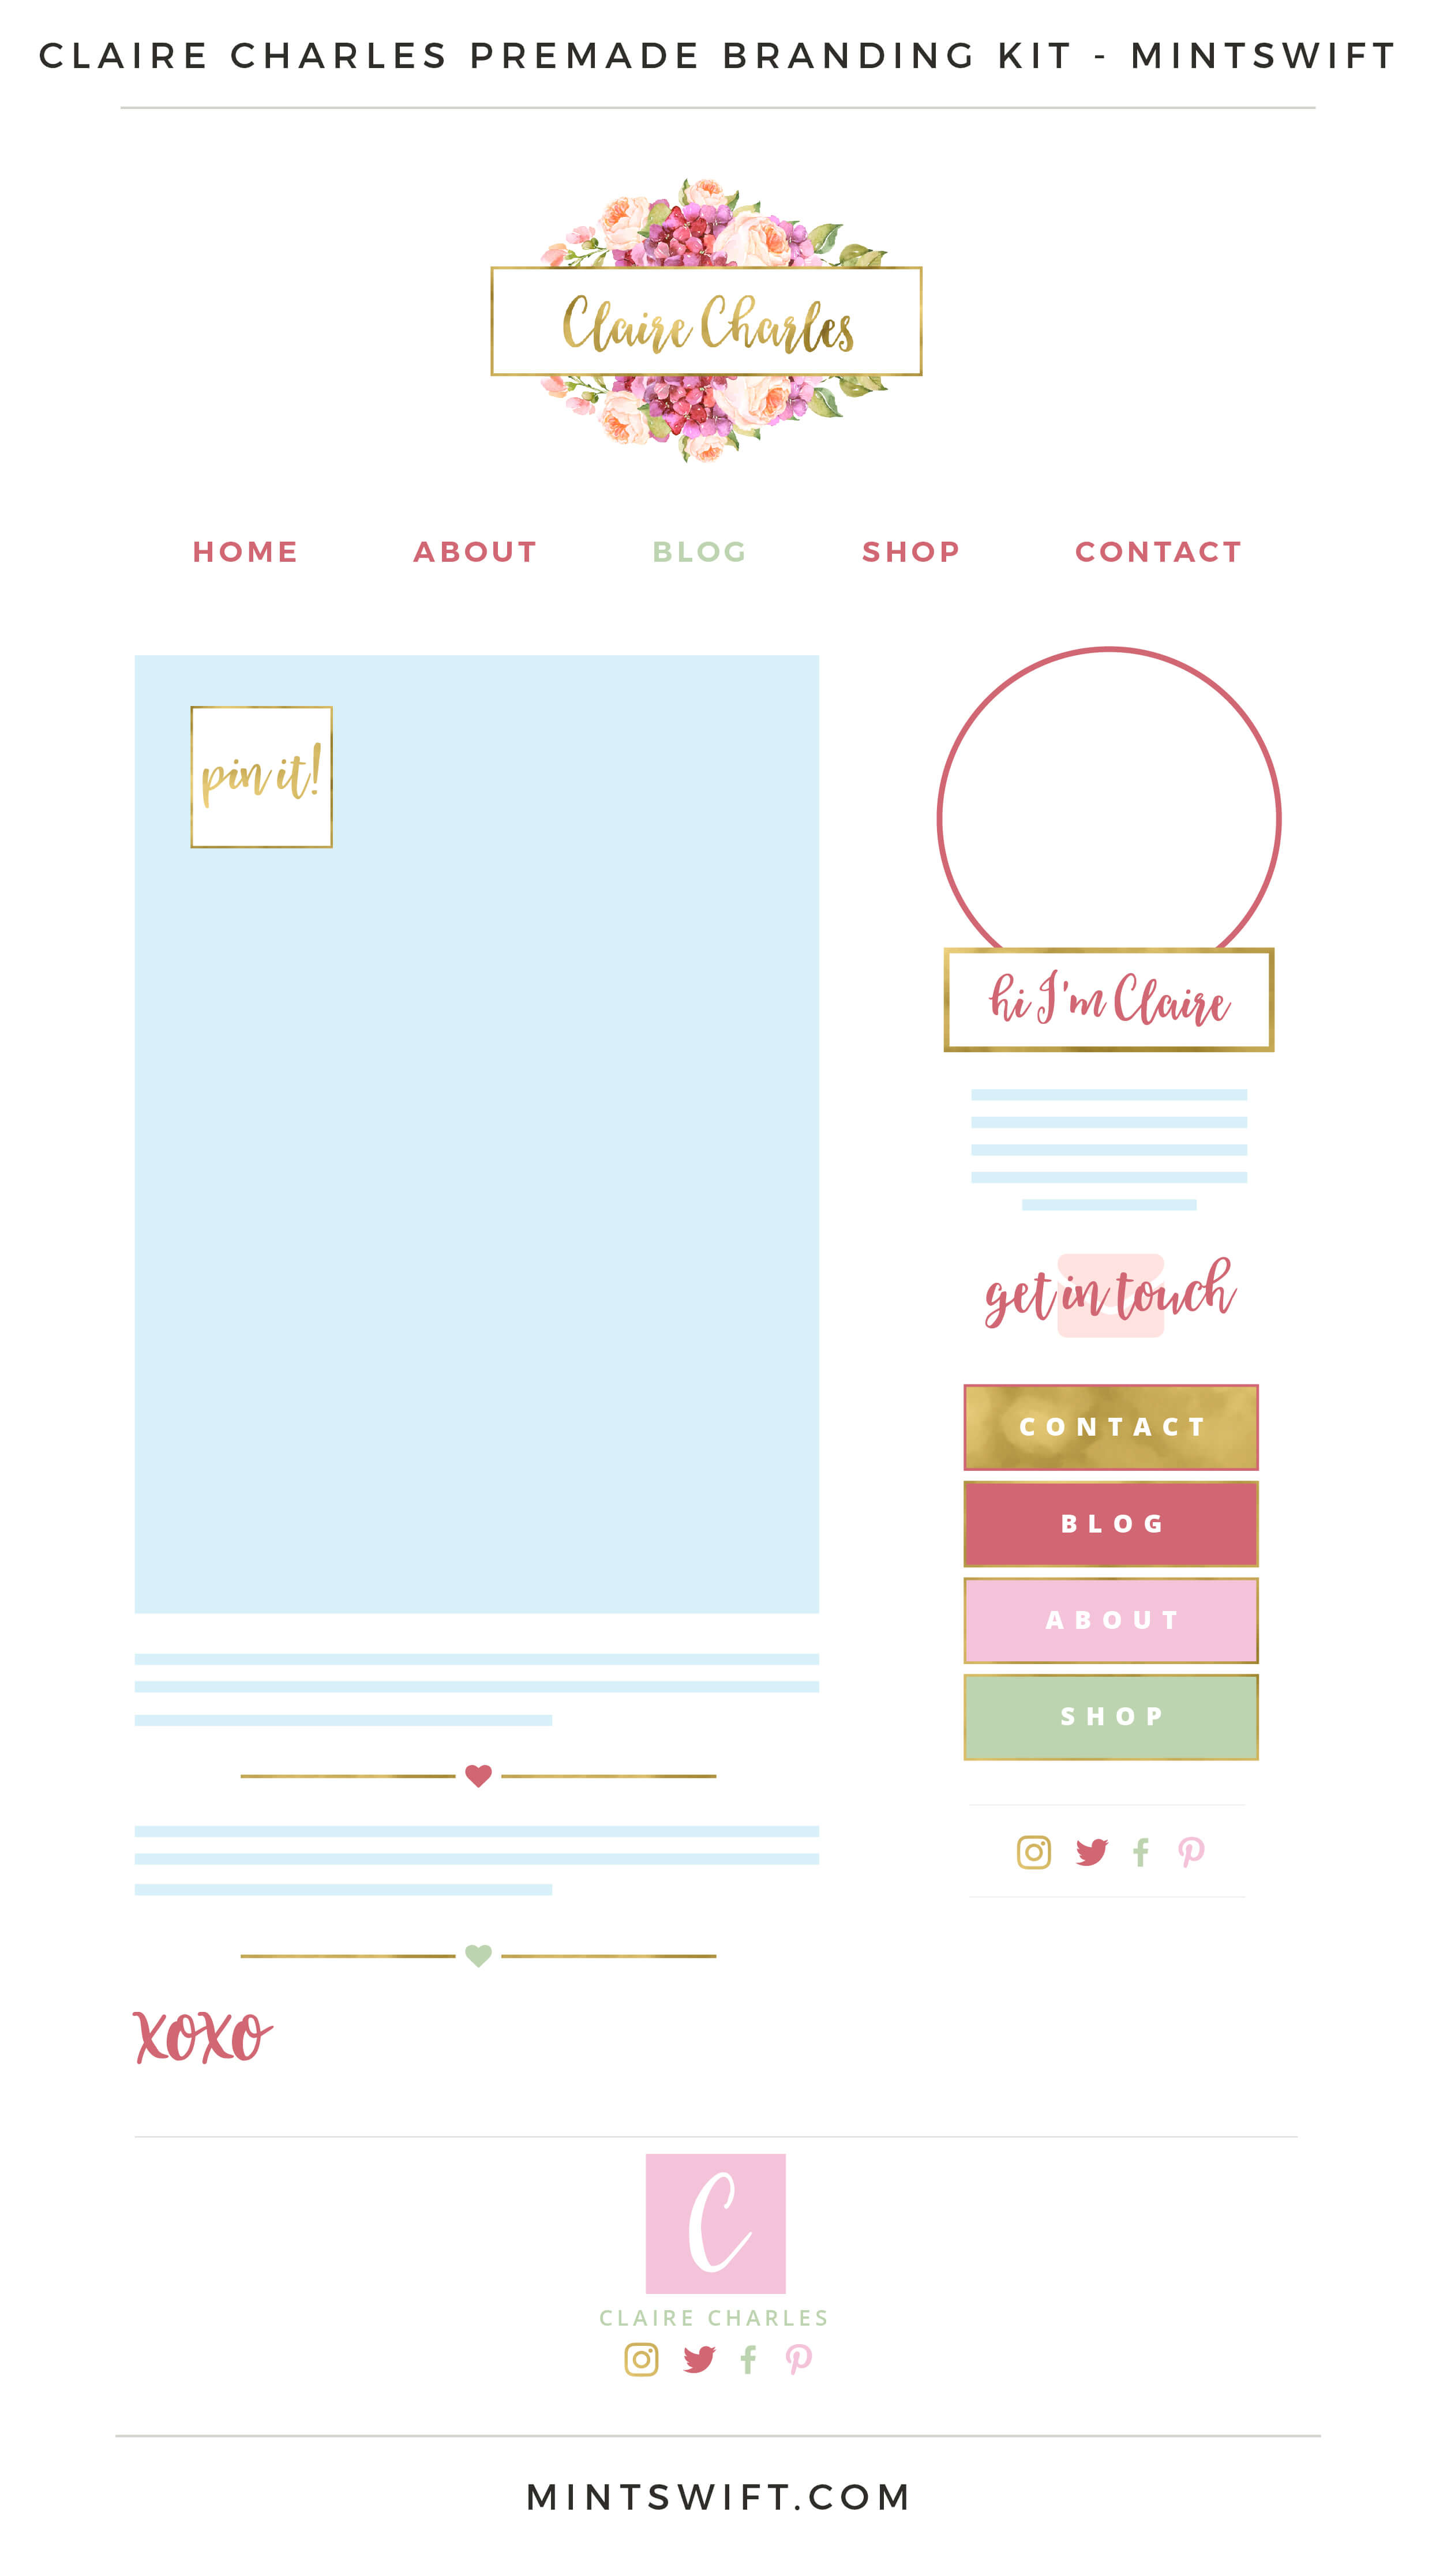 Claire Charles Premade Branding Kit Mintswift